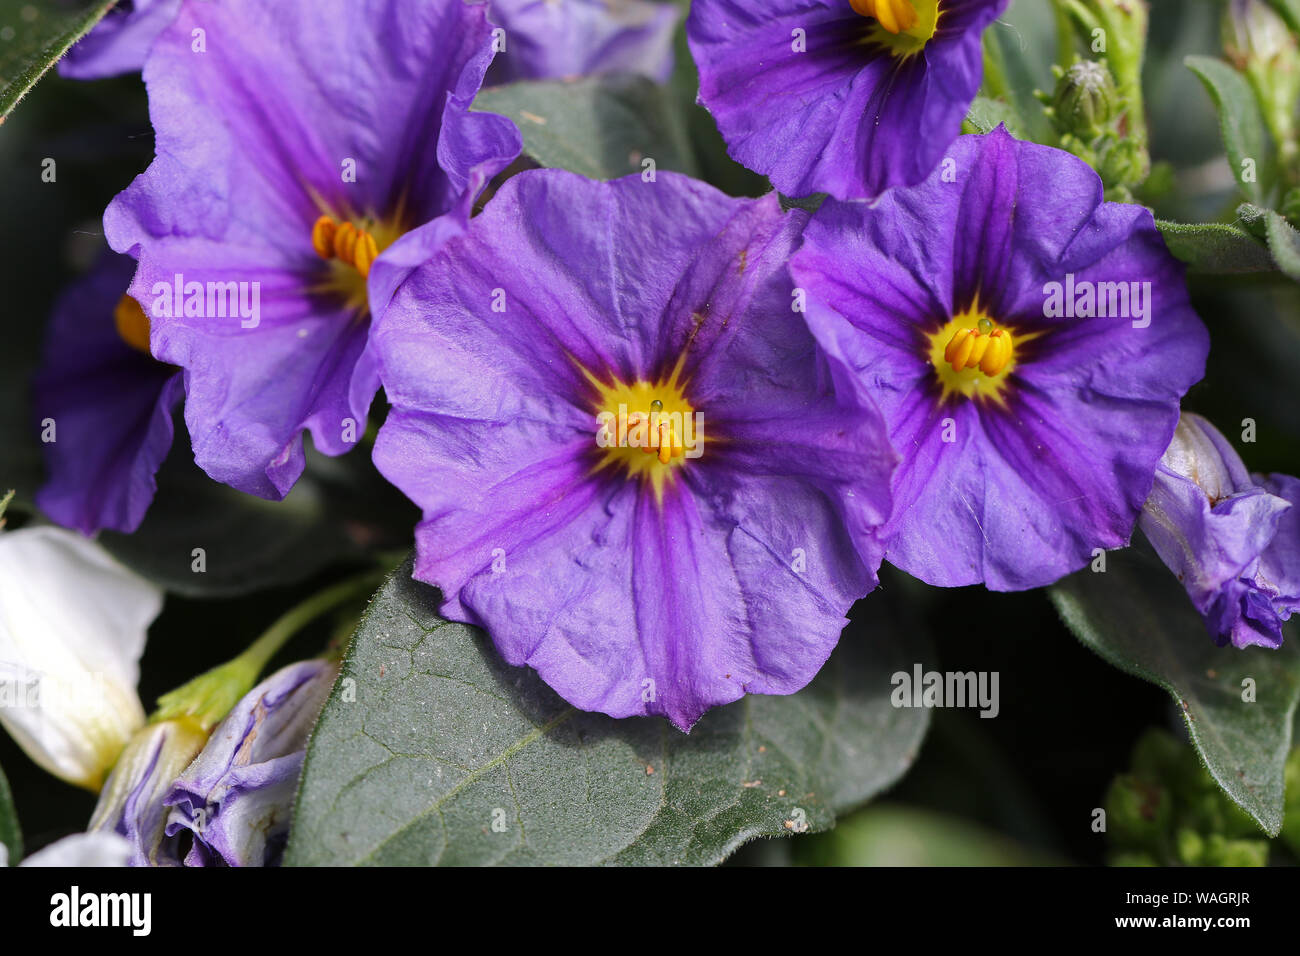 Fleur Toxique Pour L Homme purple yellow flower nightshade solanum photos & purple